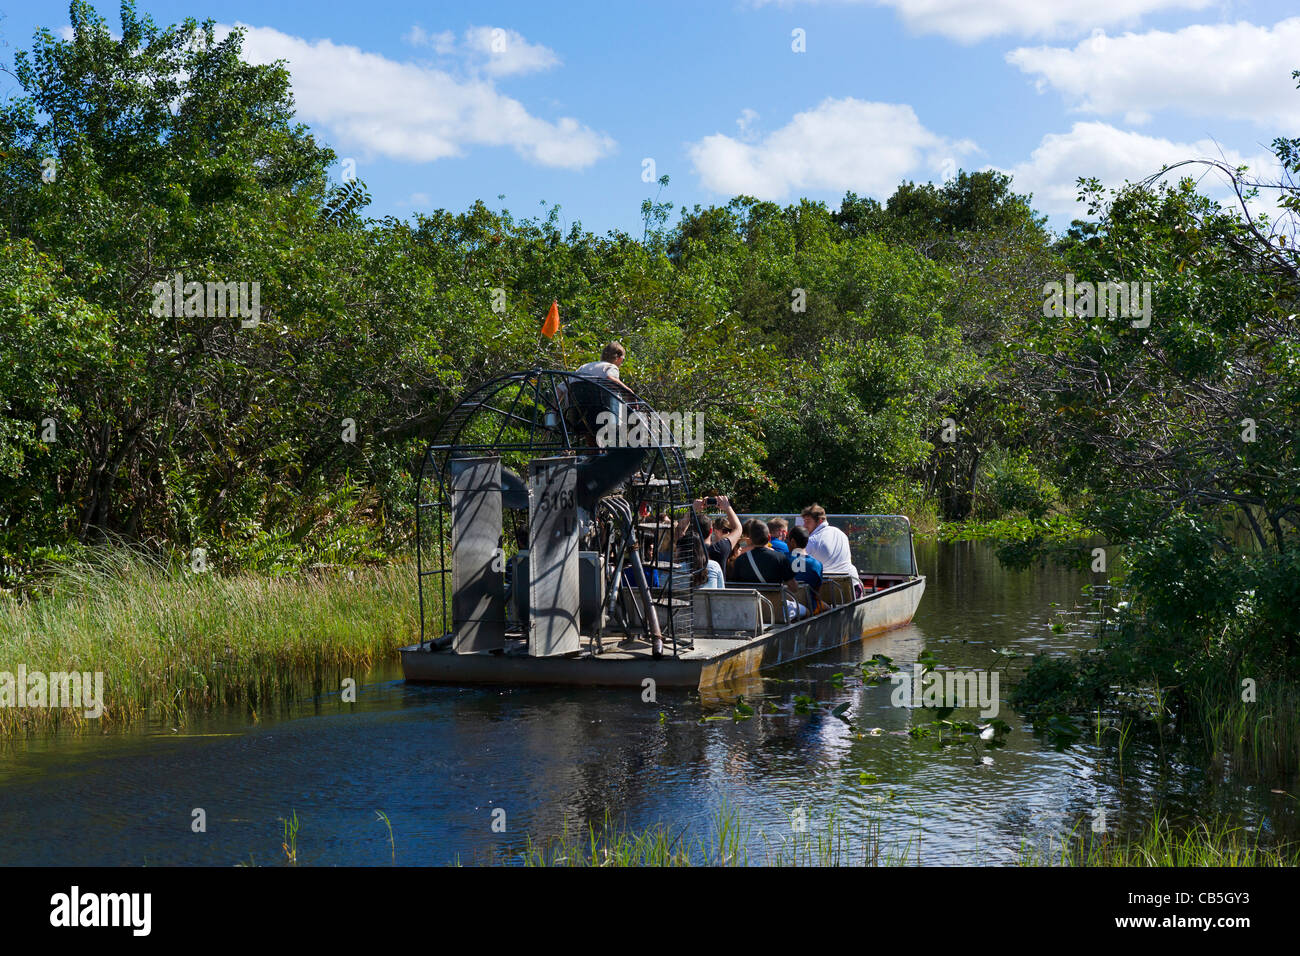 Airboat tour at Gator Park Airboat Tours on Highway 41 (Tamiami Trail), Florida Everglades, Florida, USA - Stock Image